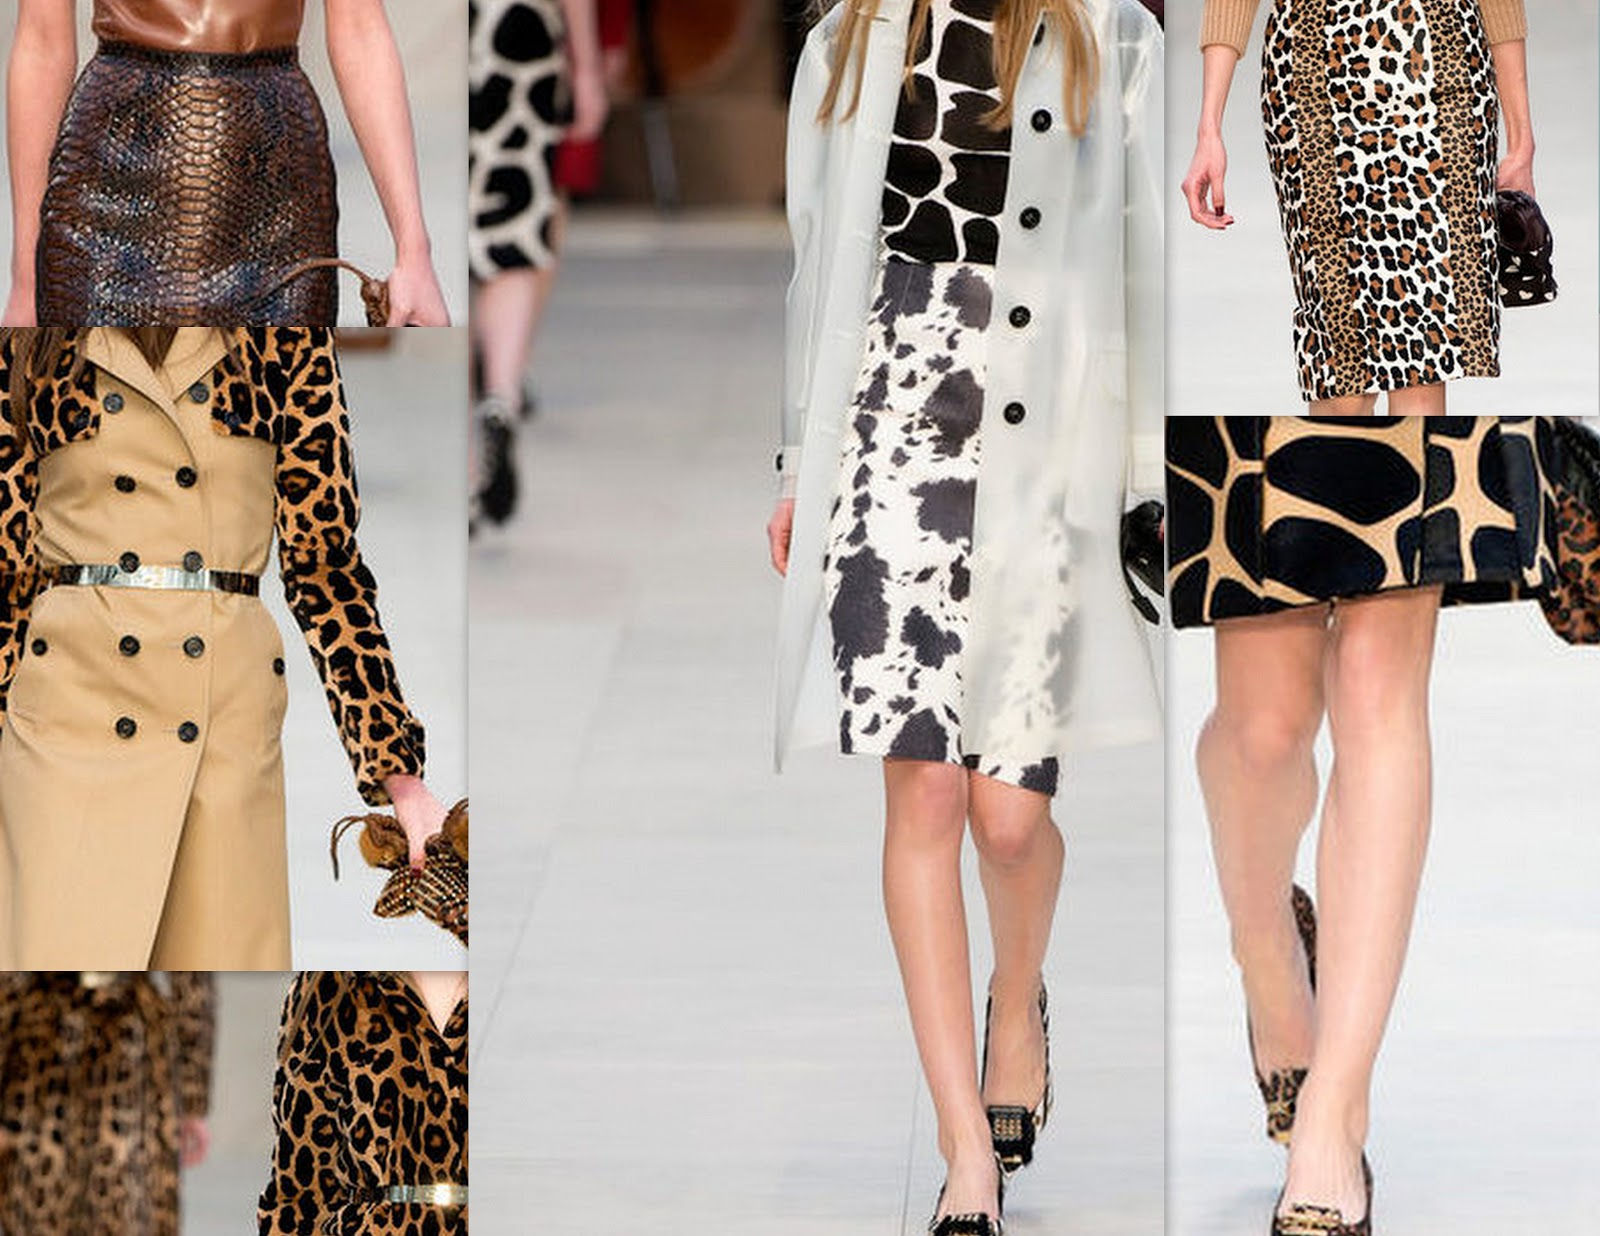 Mixing animal prints